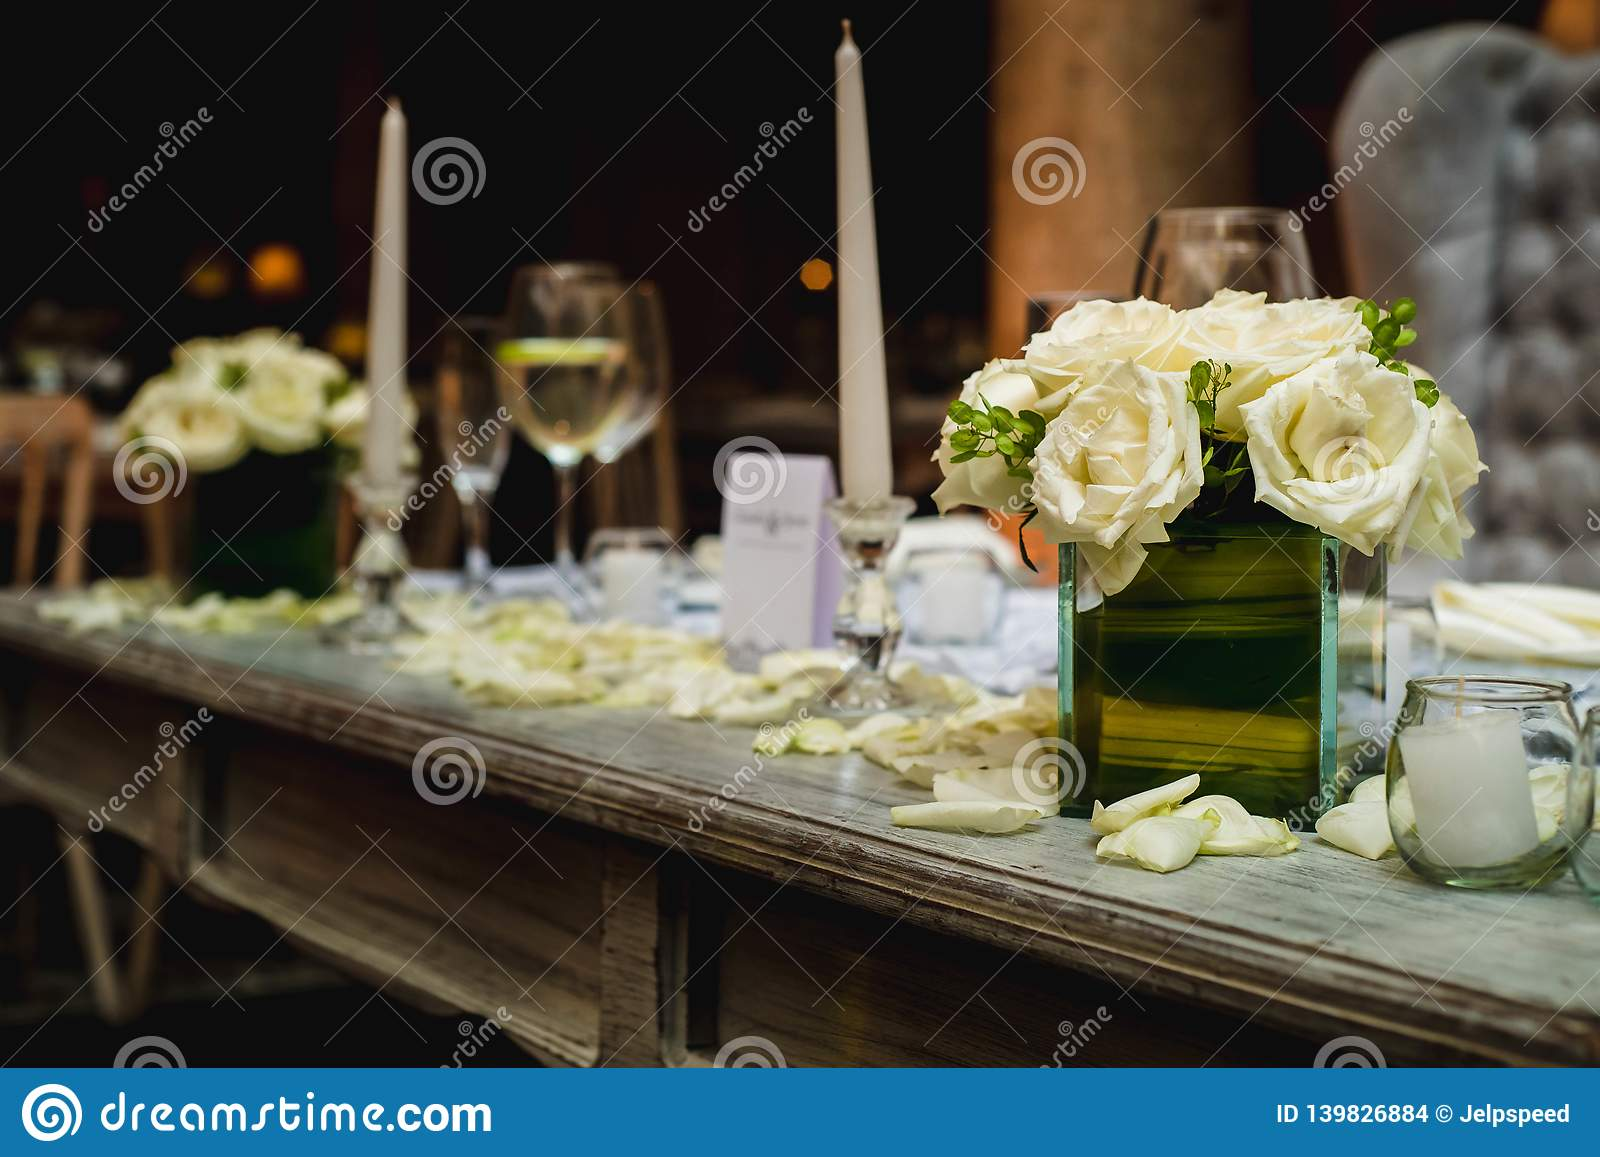 Luxurious Romantic Party Table Setting Lit By Candles